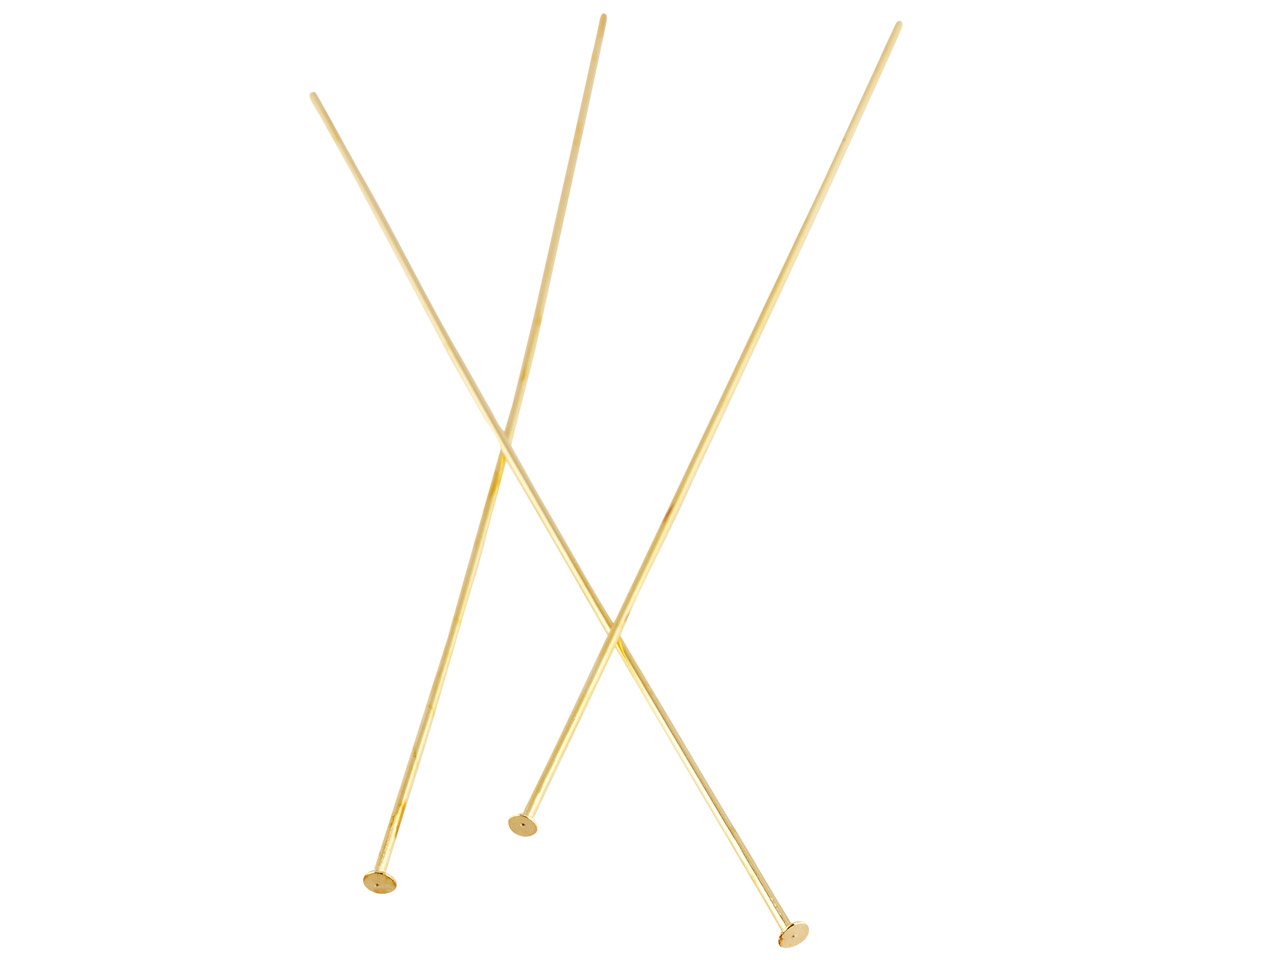 Base Metal Gold Finish Pin 75mm    Flat Headed Pack of 100, Half Hard